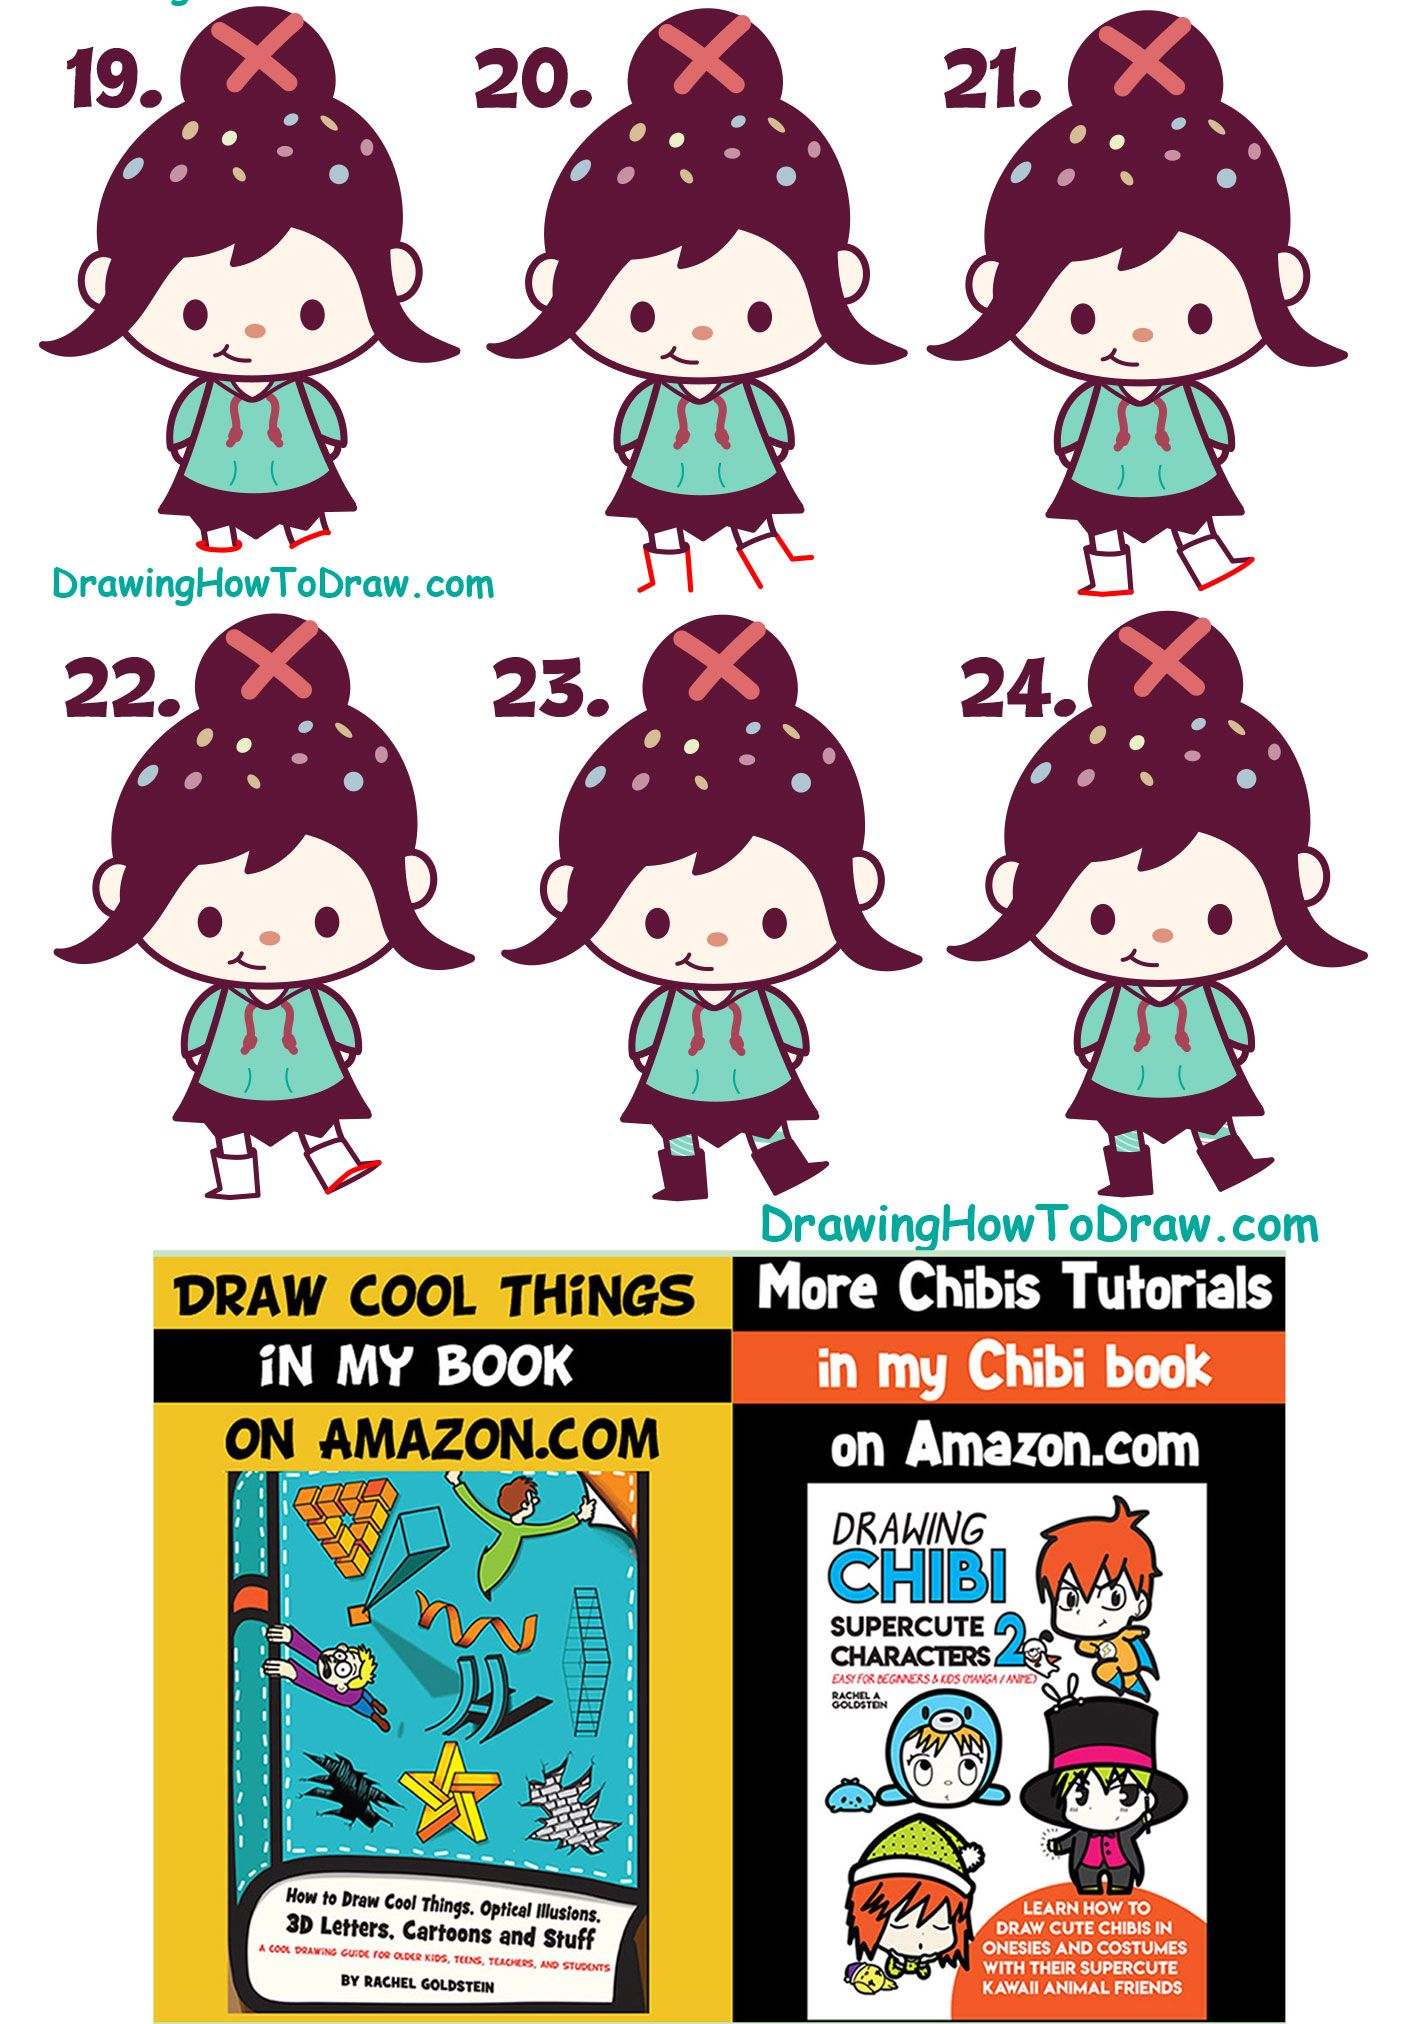 How To Draw Cute Kawaii Chibi Vanellope Glitch From Wreck It Ralph